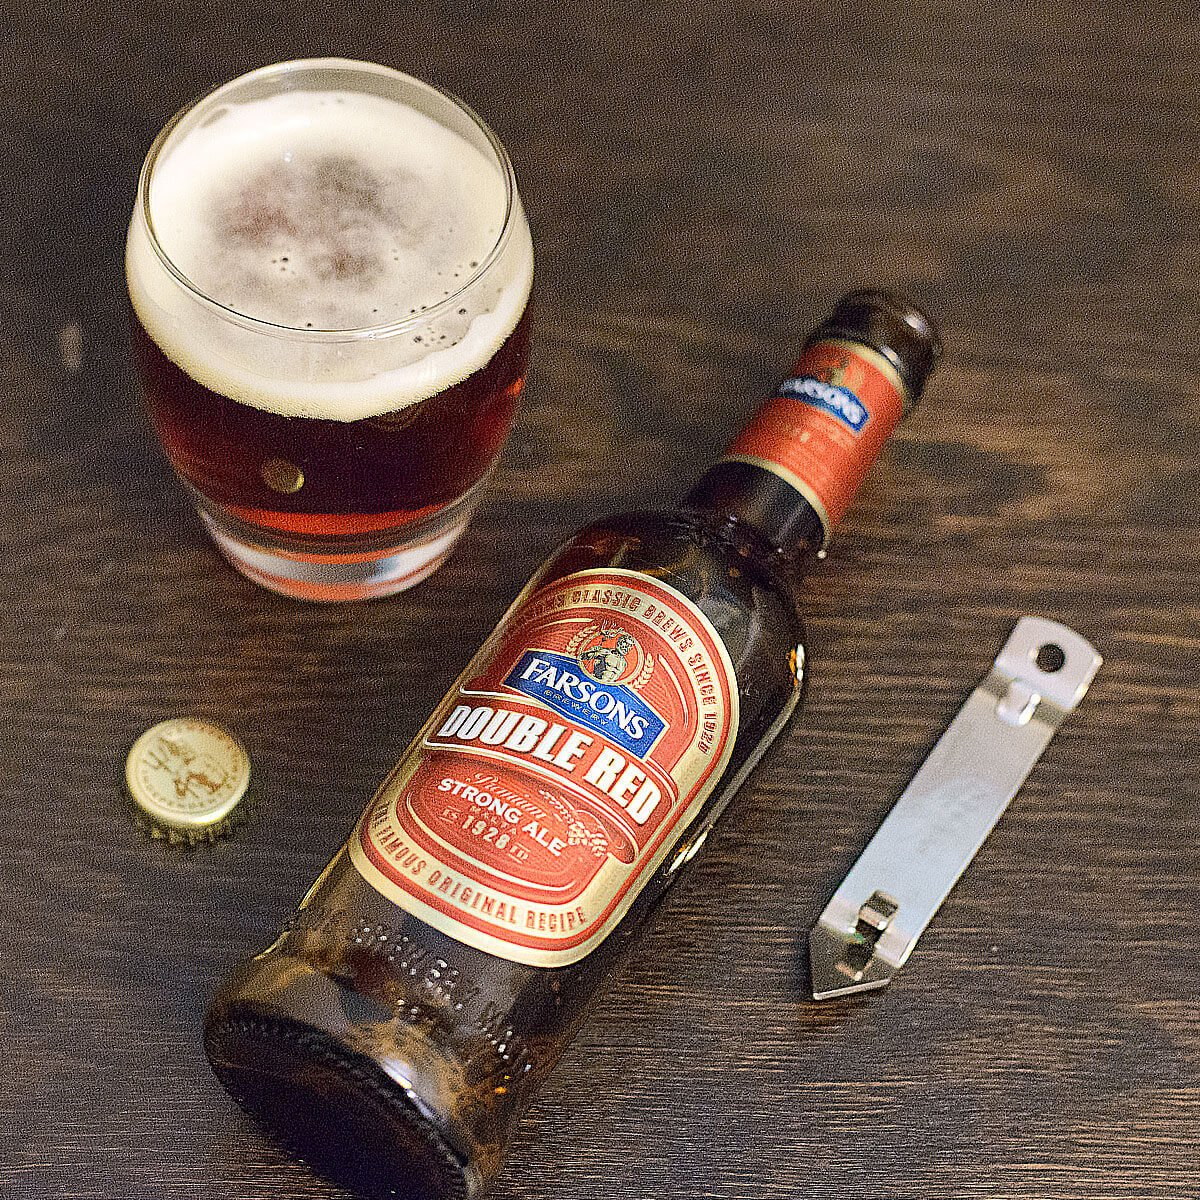 Double Red Strong Ale, an English-style Strong Ale by Simonds Farsons Cisk Plc.